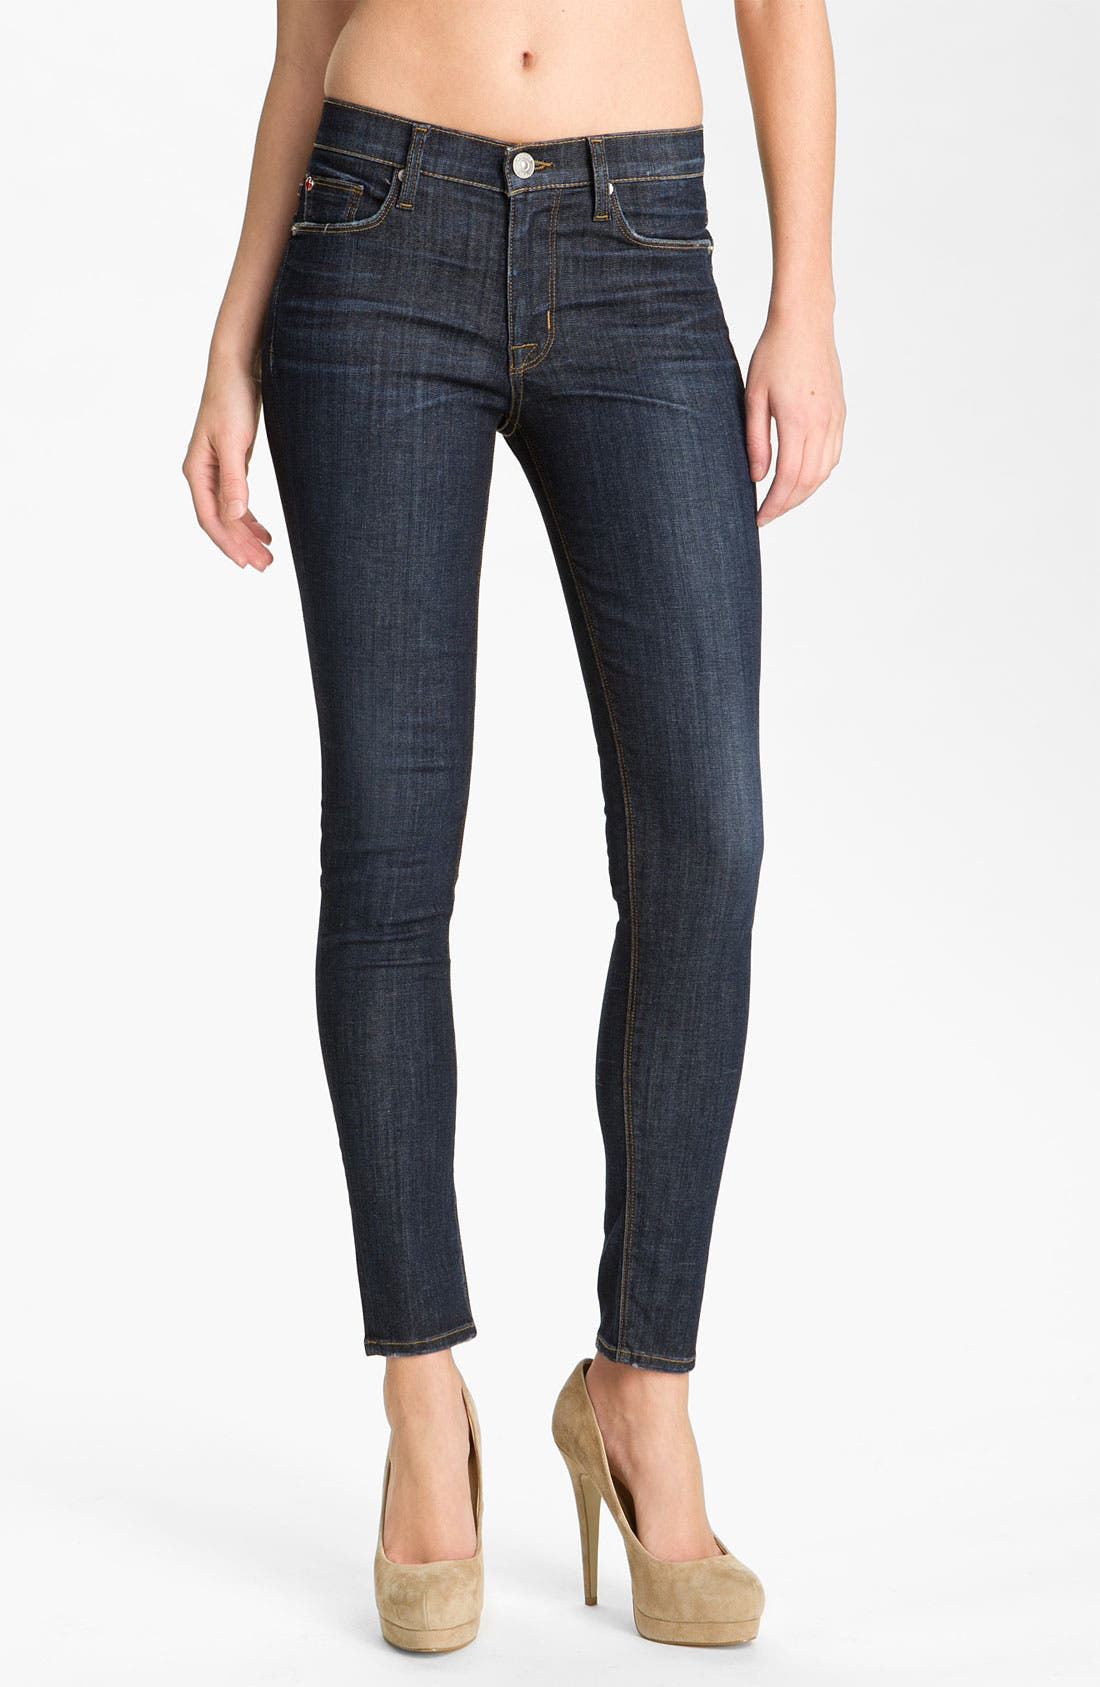 Alternate Image 1 Selected - Hudson Jeans 'Nico' Mid Rise Skinny Jeans (Abbey)